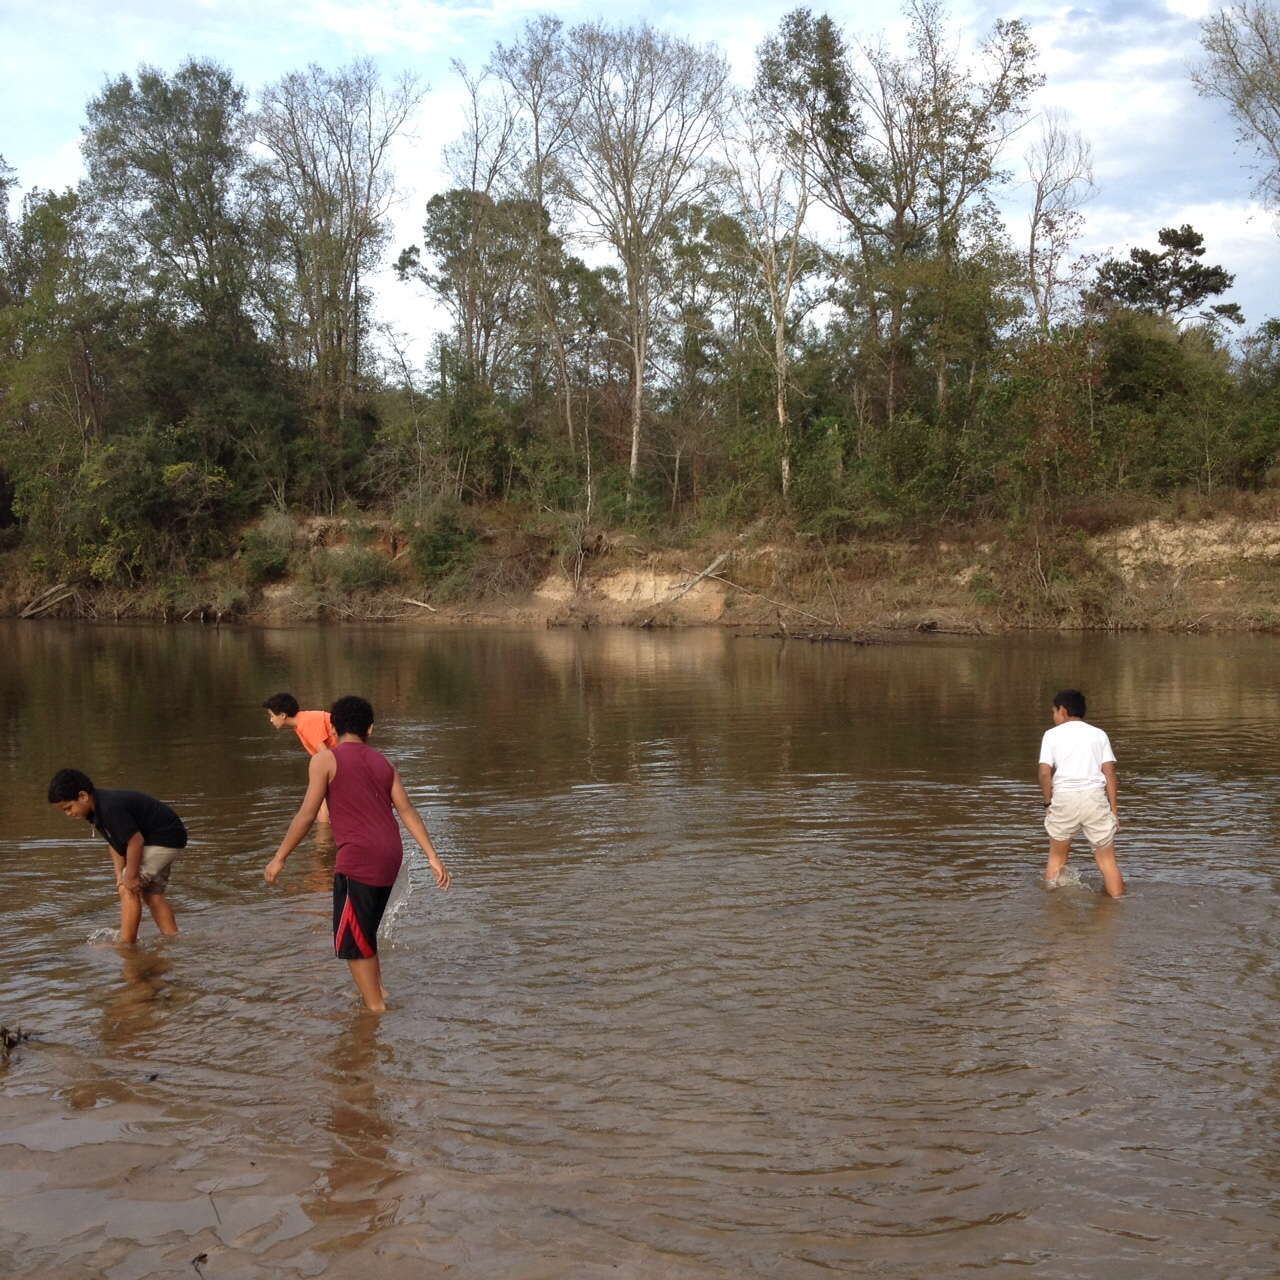 Not too chilly for a dip! Sixth graders searching for the perfect skipping stones at Bogue Chitto SP.